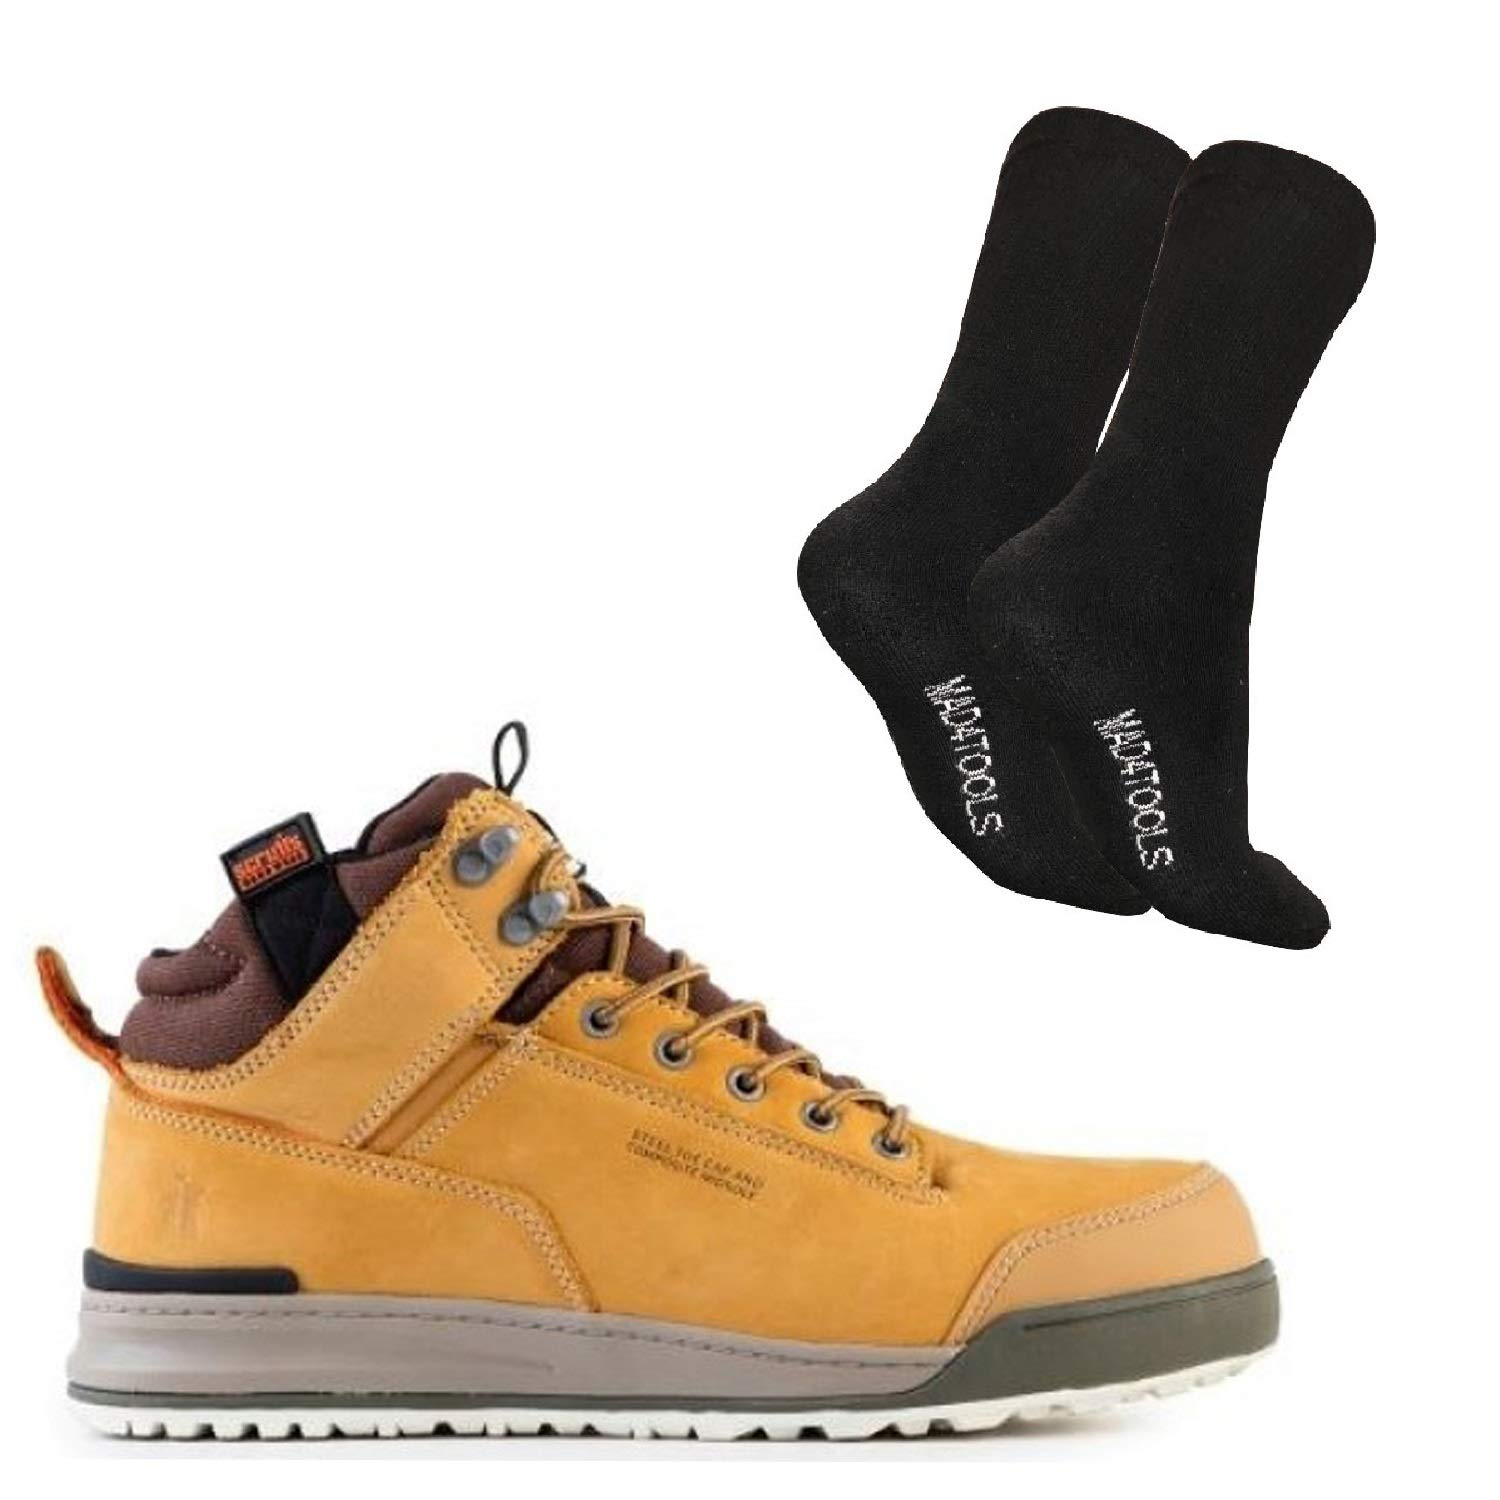 Scruffs Switchback Safety Boots and Work Socks